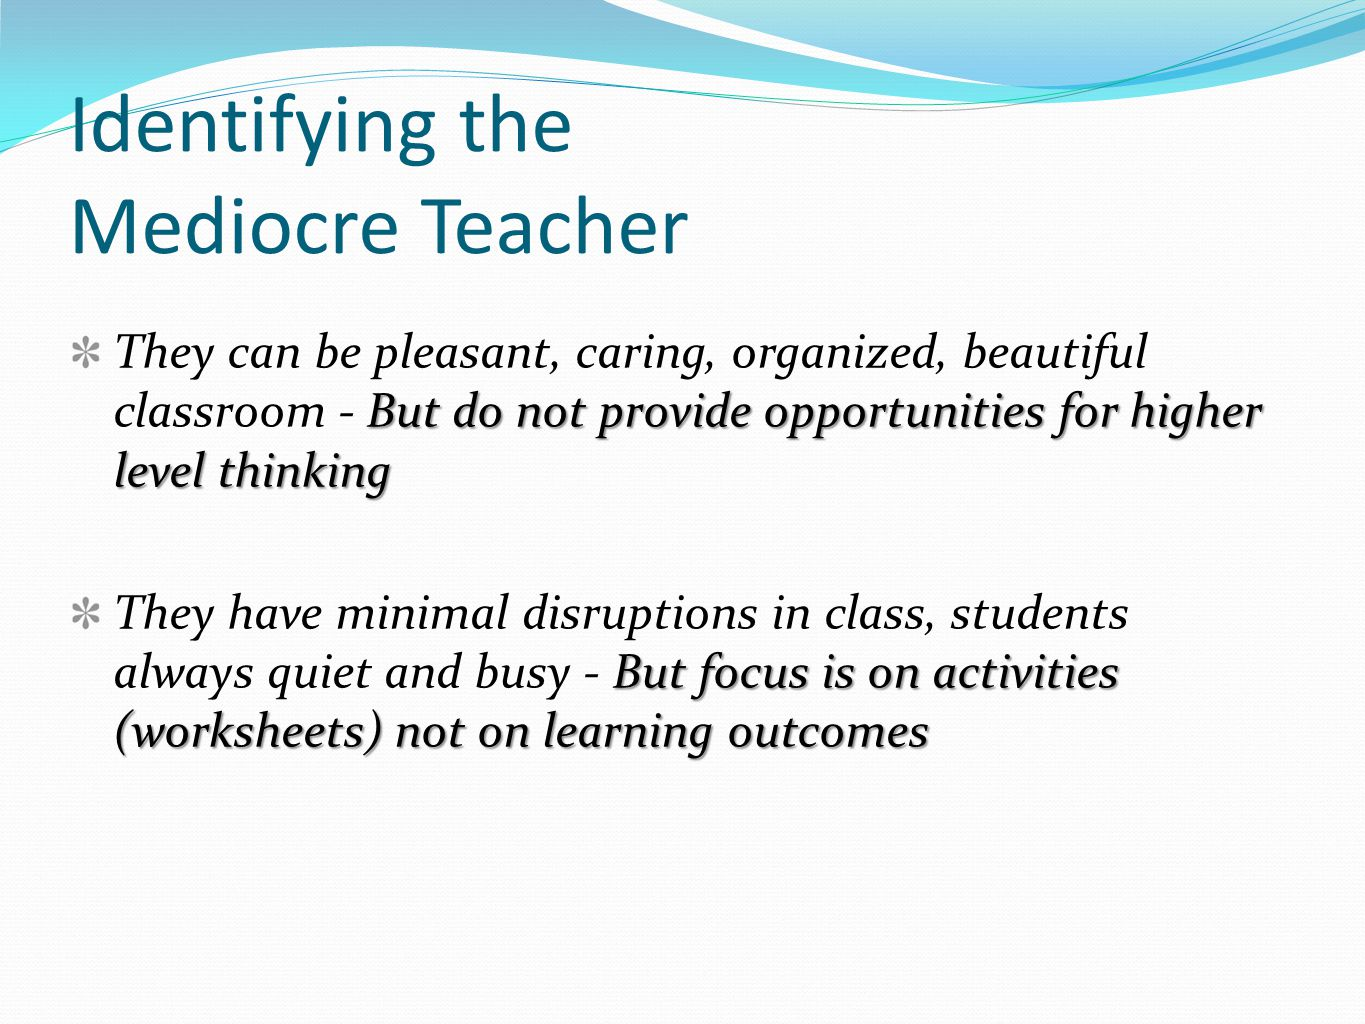 Identifying the Mediocre Teacher But do not provide opportunities for higher level thinking They can be pleasant, caring, organized, beautiful classroom - But do not provide opportunities for higher level thinking But focus is on activities (worksheets) not on learning outcomes They have minimal disruptions in class, students always quiet and busy - But focus is on activities (worksheets) not on learning outcomes